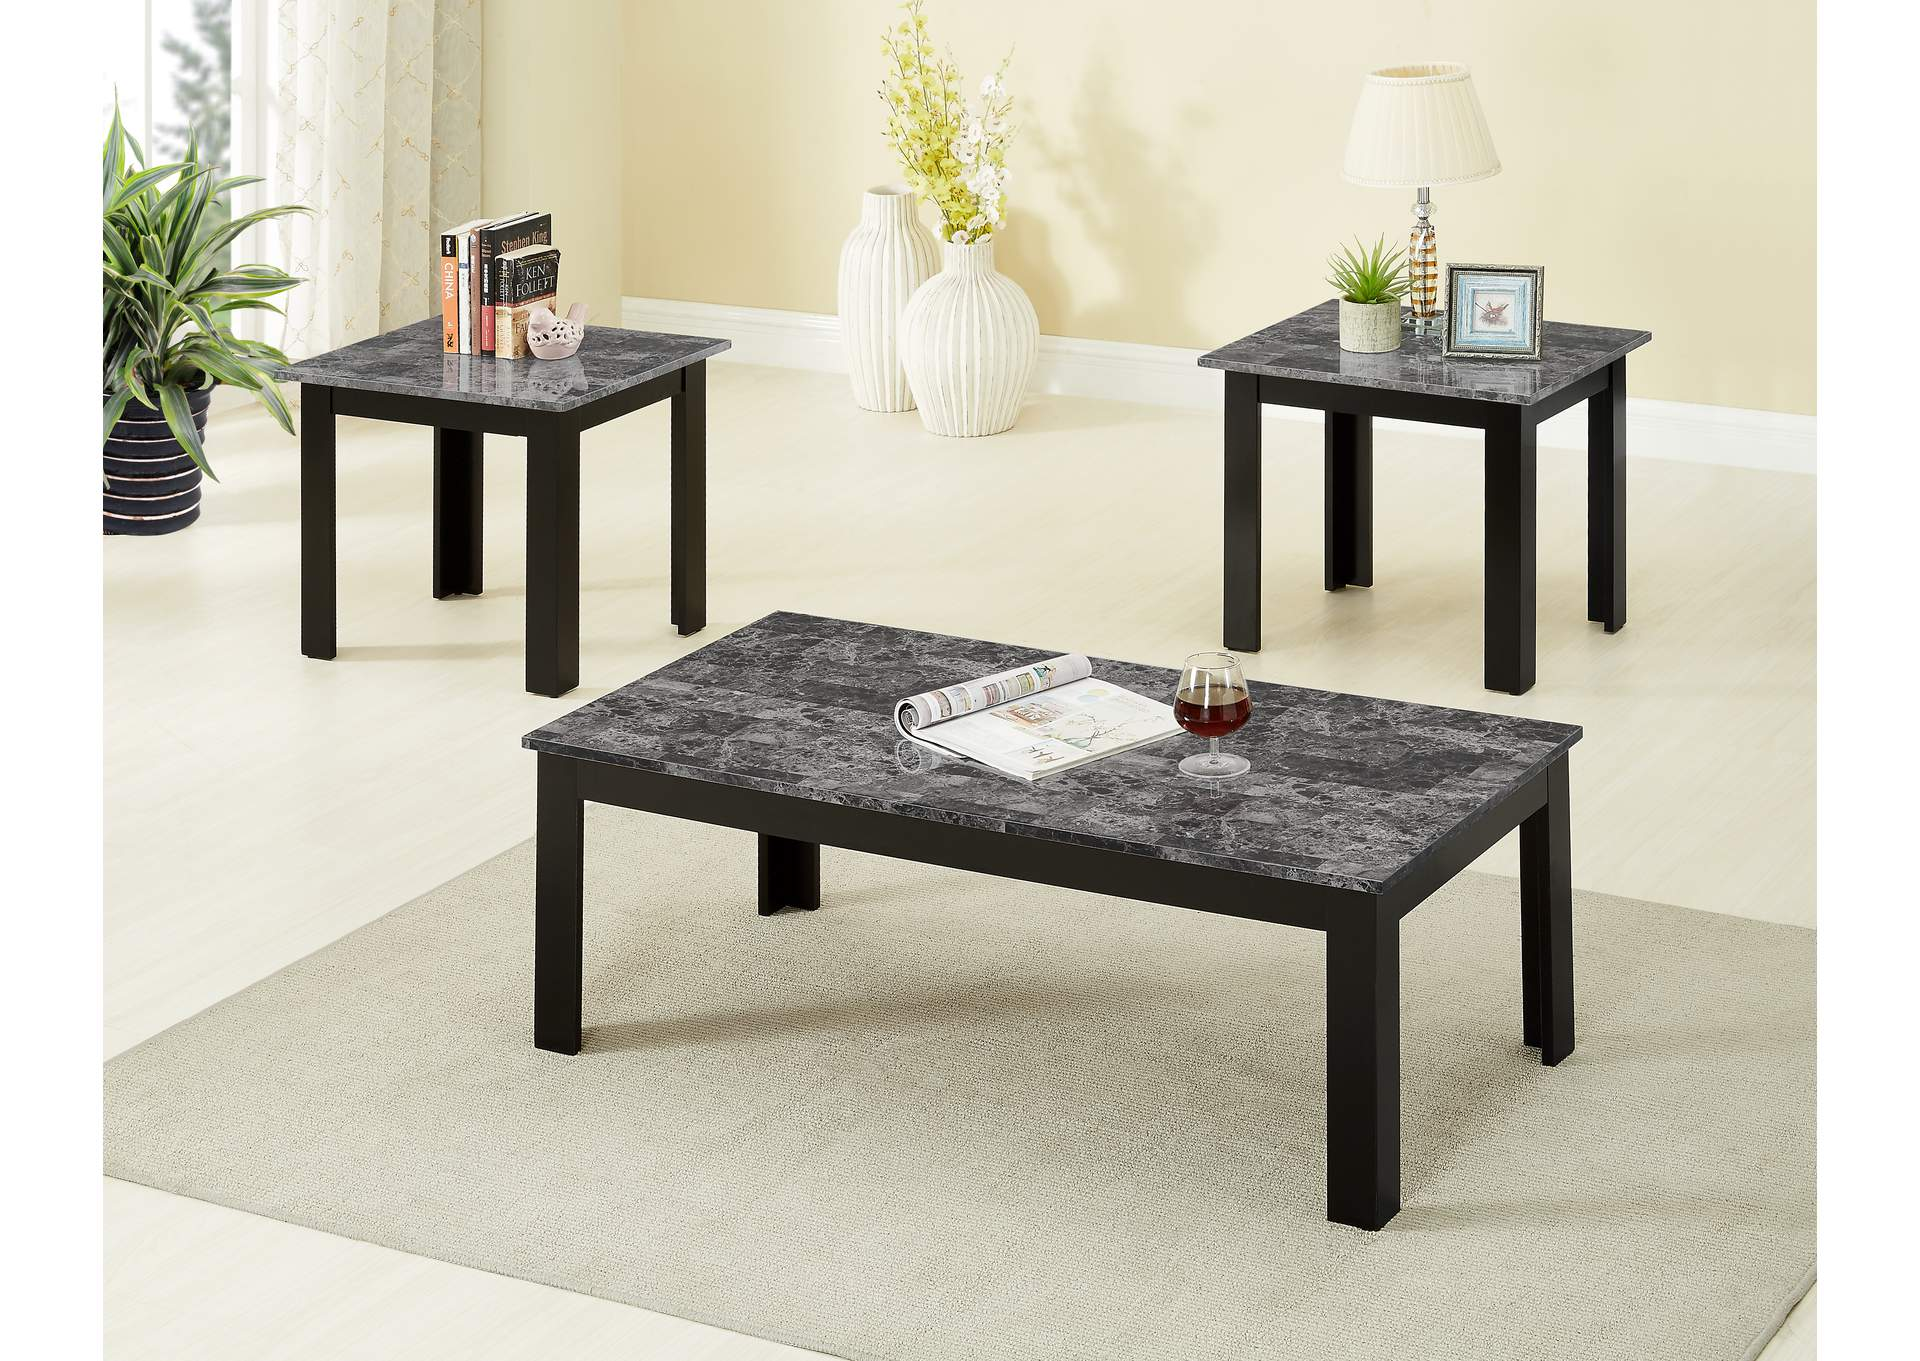 Superbe 3 Piece Espresso Faux Marble Top Coffee End Table Set,Global Trading